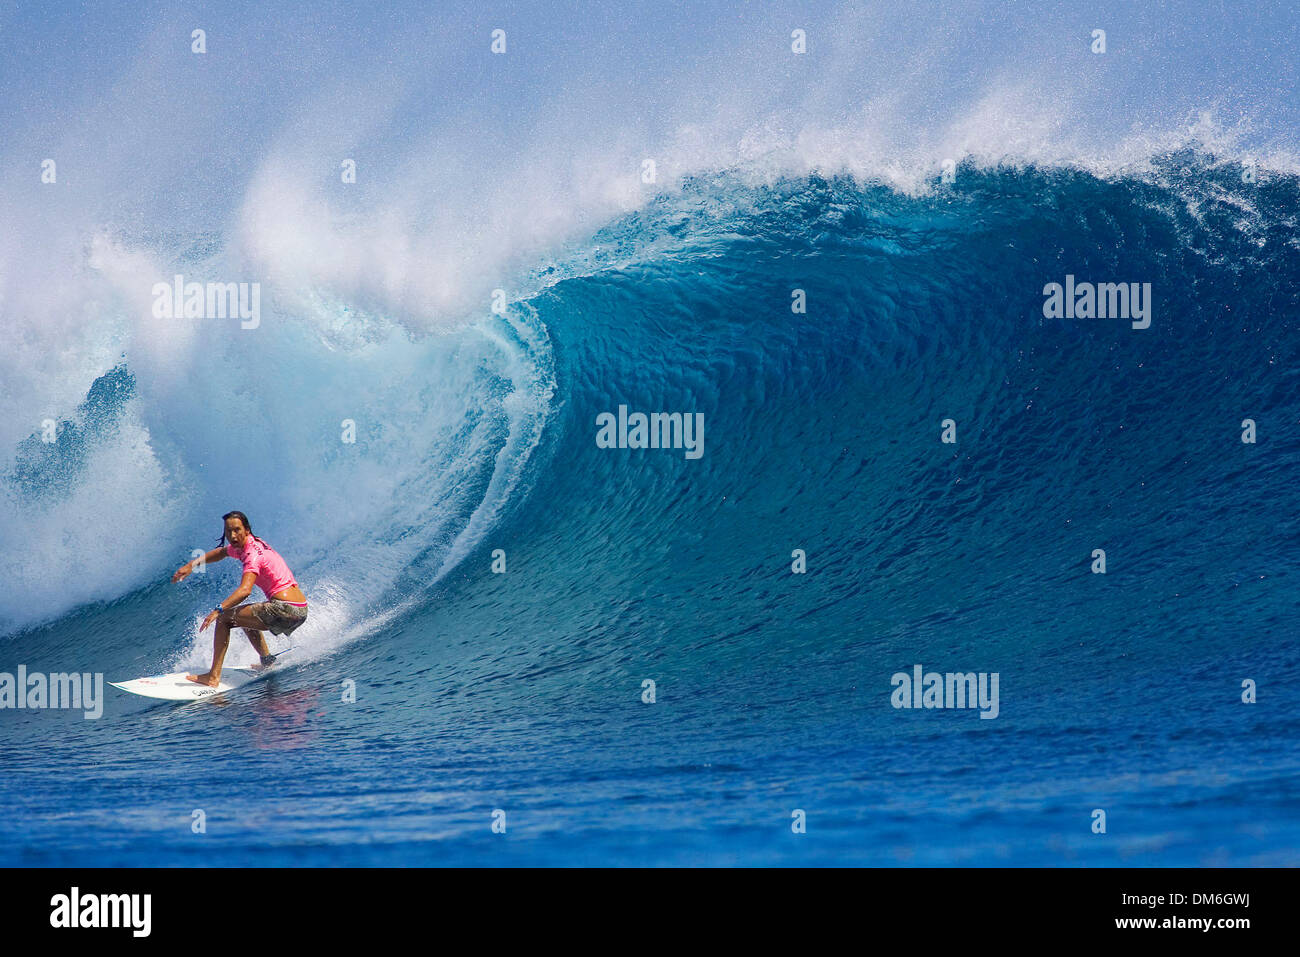 Apr 21, 2005; Tavarua Island, Fiji; Former six times ASP world champion LAYNE BEACHLEY (Manly Beach, Sydney, Aus) finished runner up in the Roxy Pro at Cloudbreak. Beachley held the lead until the final 30 seconds of the 35 minute final when Mulanovich, the reigning world champion, snatched a high scoring wave to claim victory. Beachley pocketed US$6 600 in prize money and moved in - Stock Image